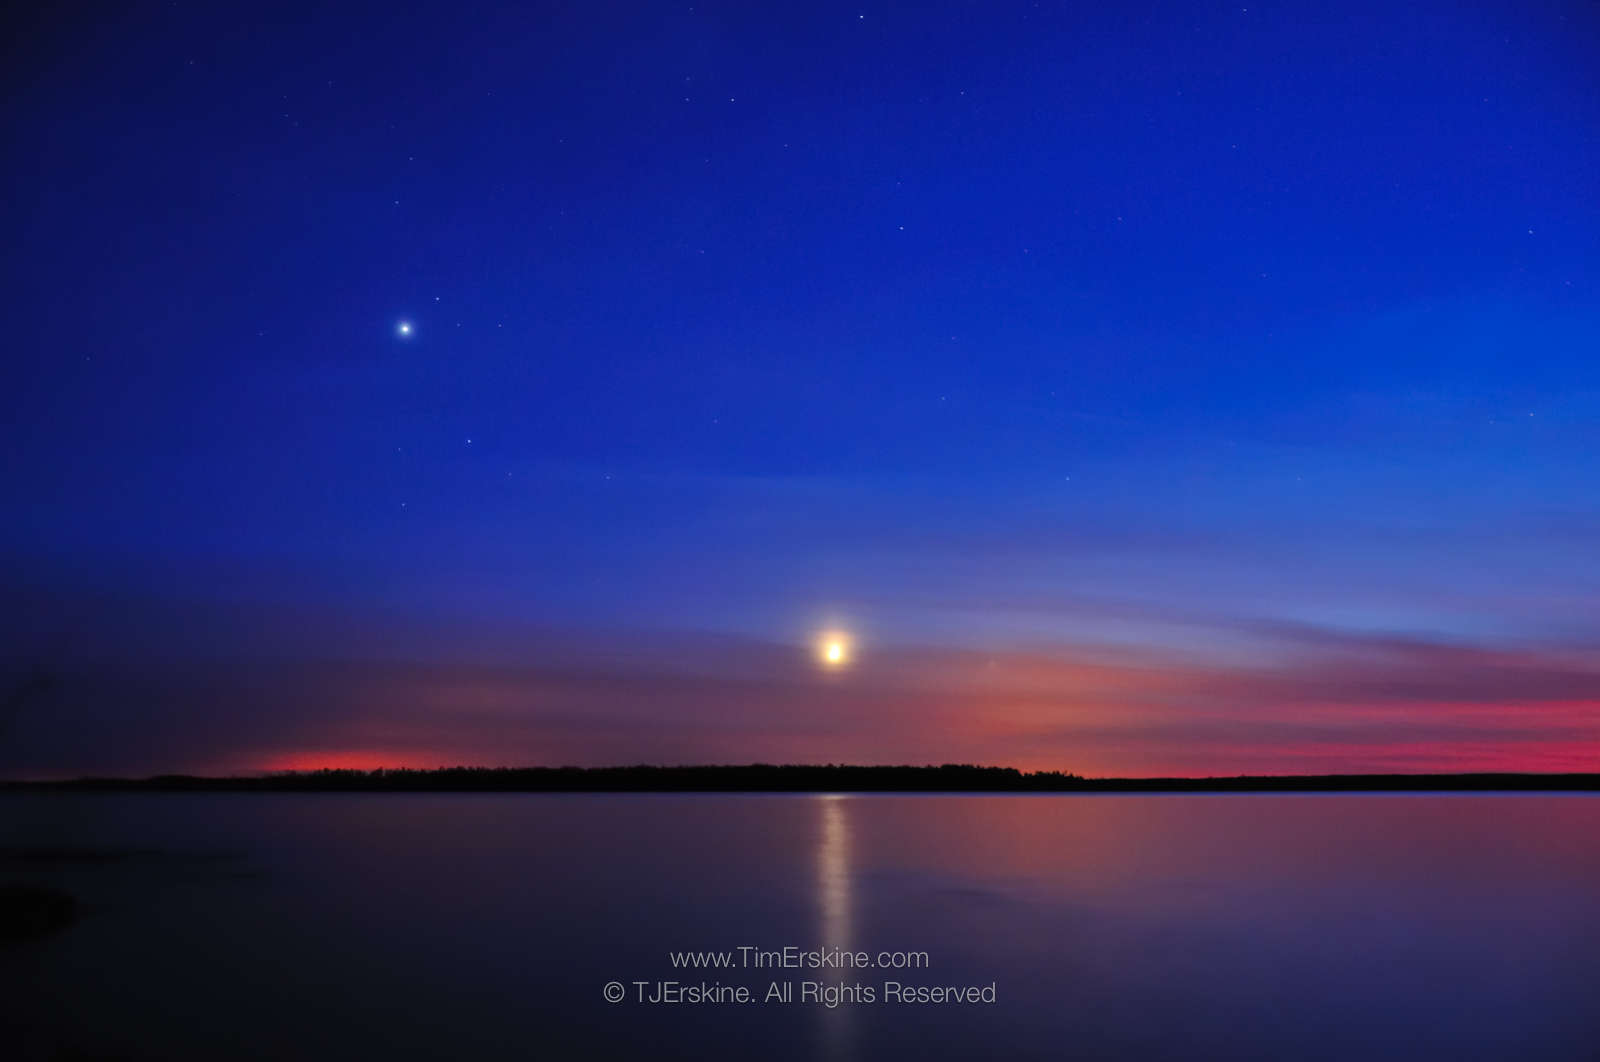 Moonlight Bay Sunset with Moon, Venus and Stars